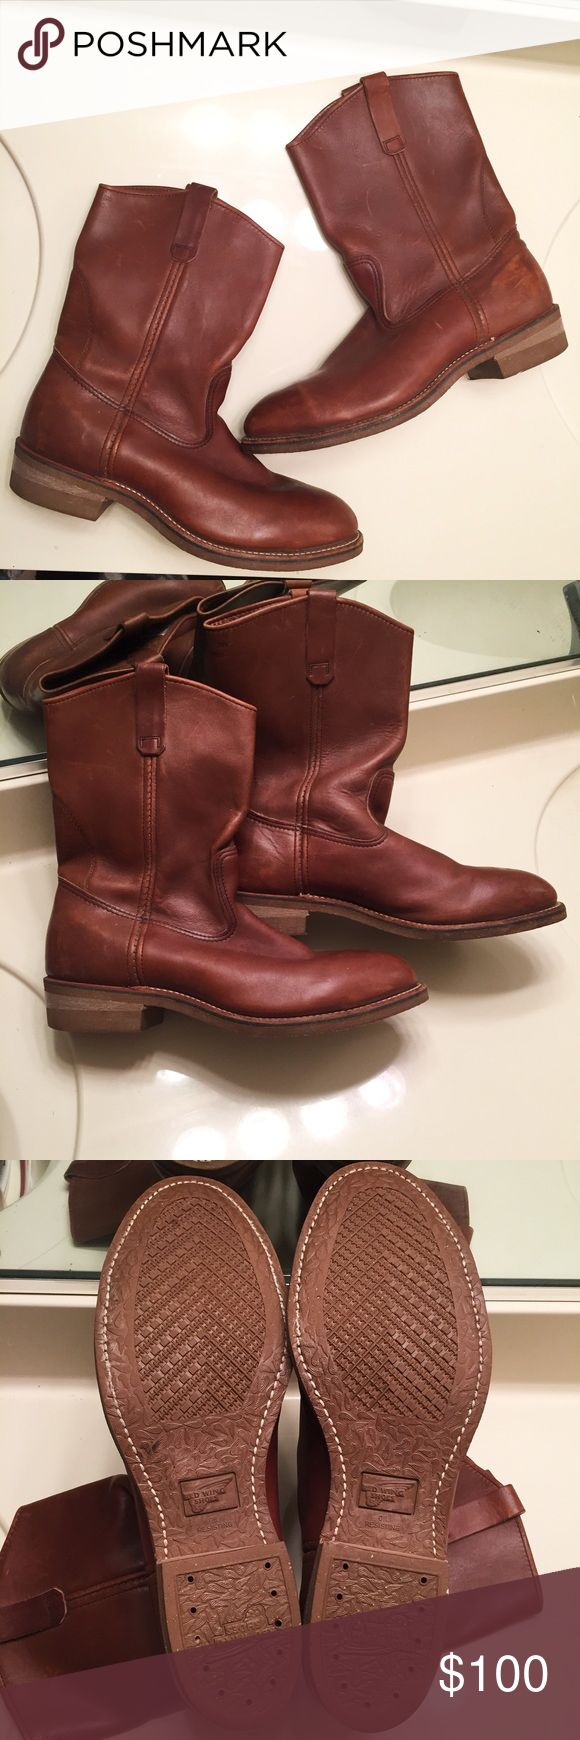 Men's Red Wing genuine leather cowboy boots Genuine leather brown cowboy boots for men size 12. Have been worn a few times, with a few minor scuffs as shown in the pictures but still in excellent condition. Red Wing Shoes Shoes Cowboy & Western Boots